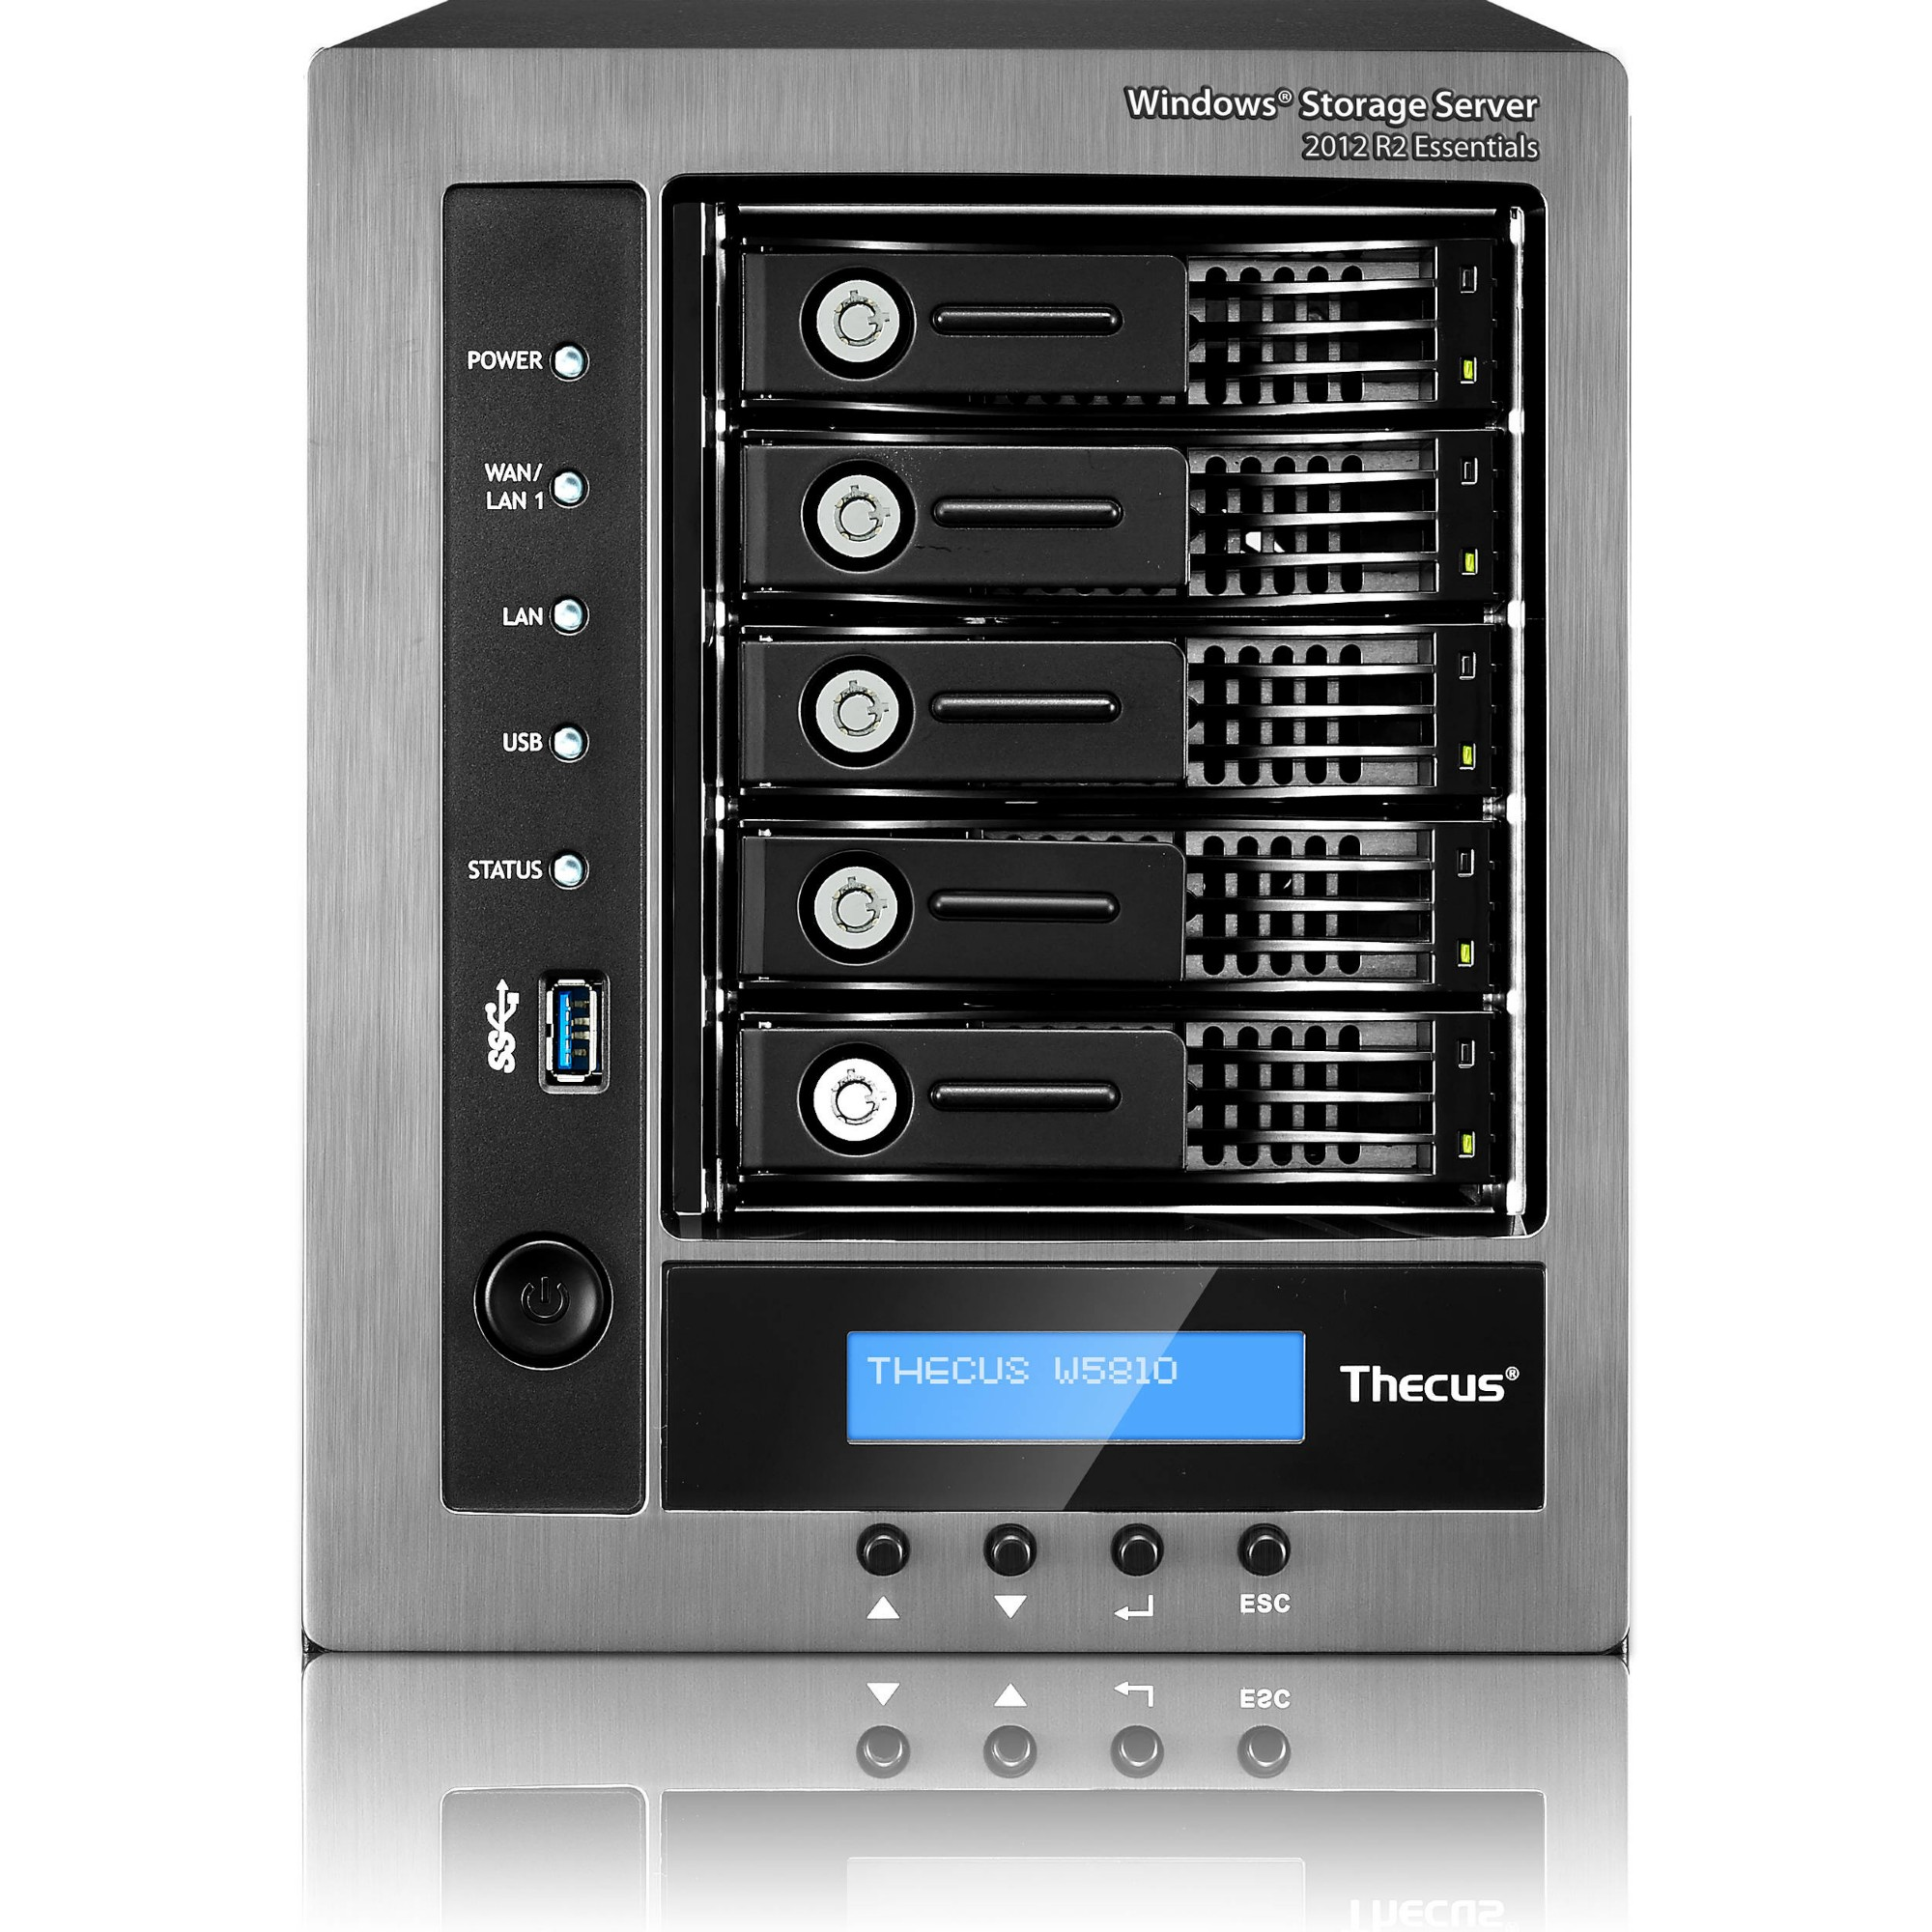 ORIGIN STORAGE W5810/8TB SERVER COMPACT ETHERNET LAN BLACK